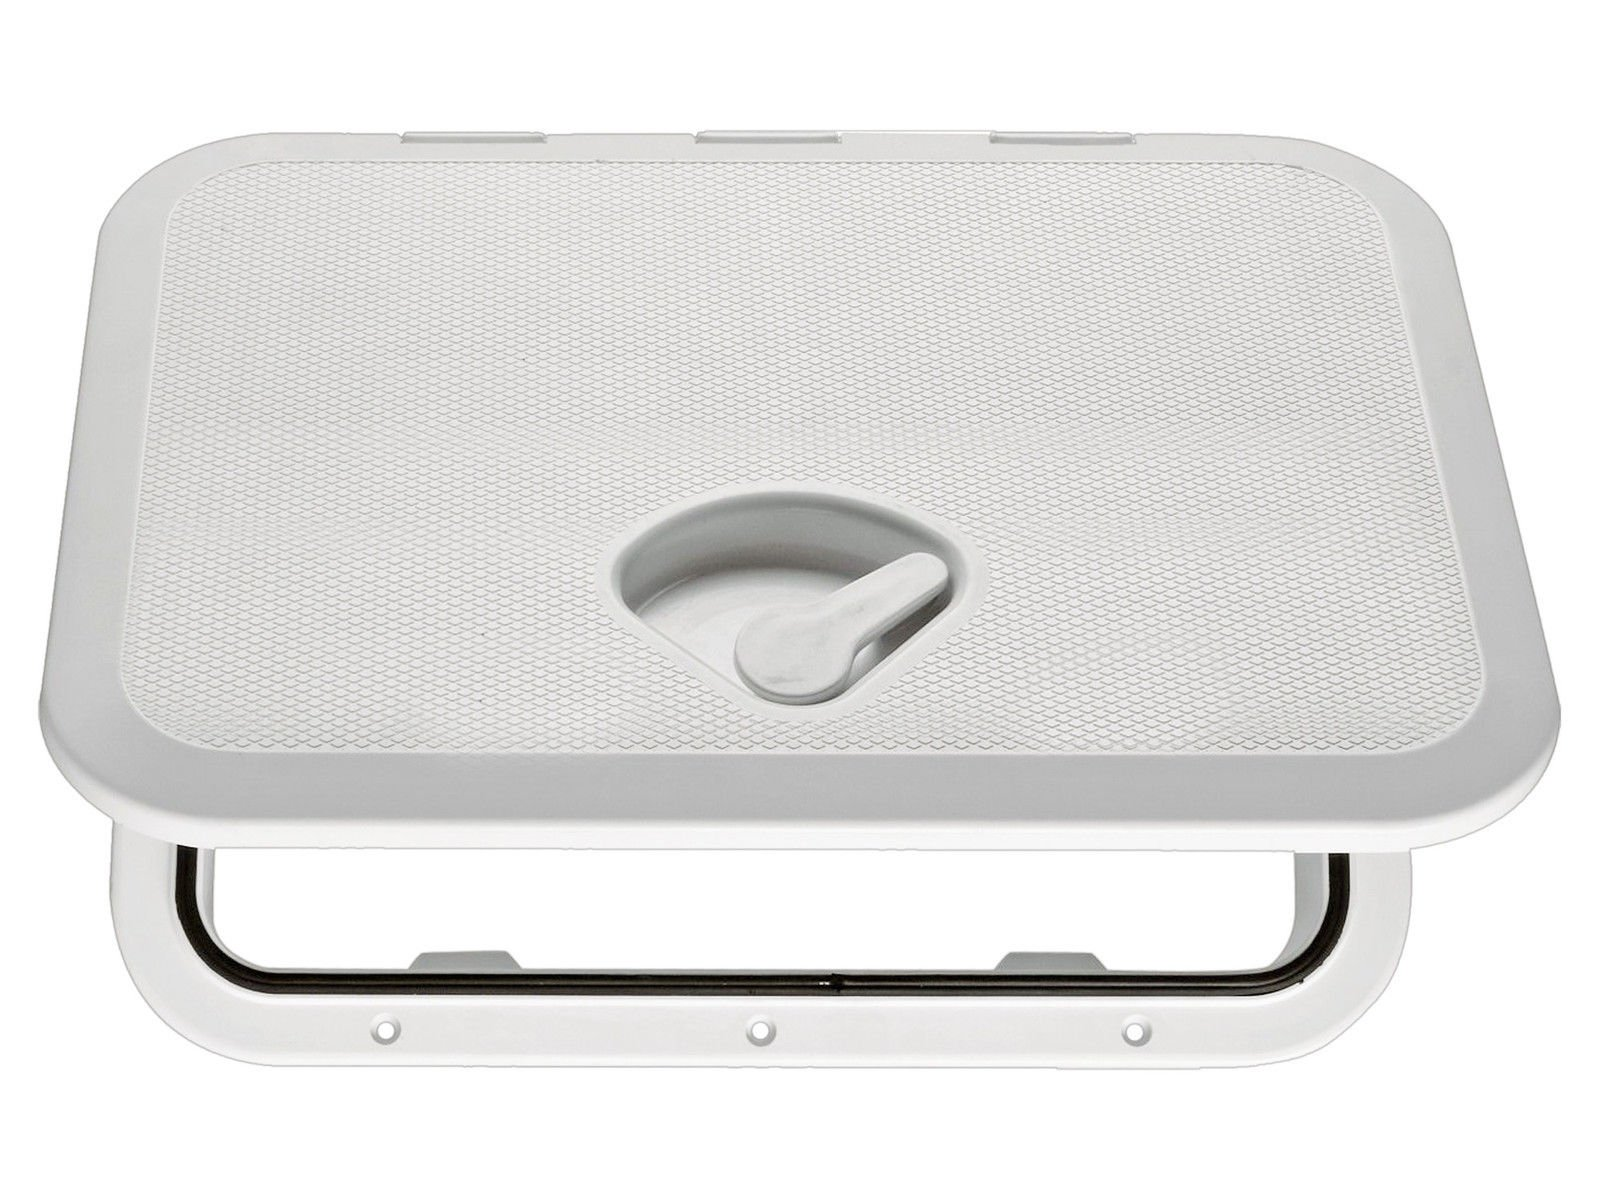 SEAFLO Marine Boat Deck Access Hatch & Lid 14.75'' x 10.6'', White, 270mm x 375mm by SEAFLO